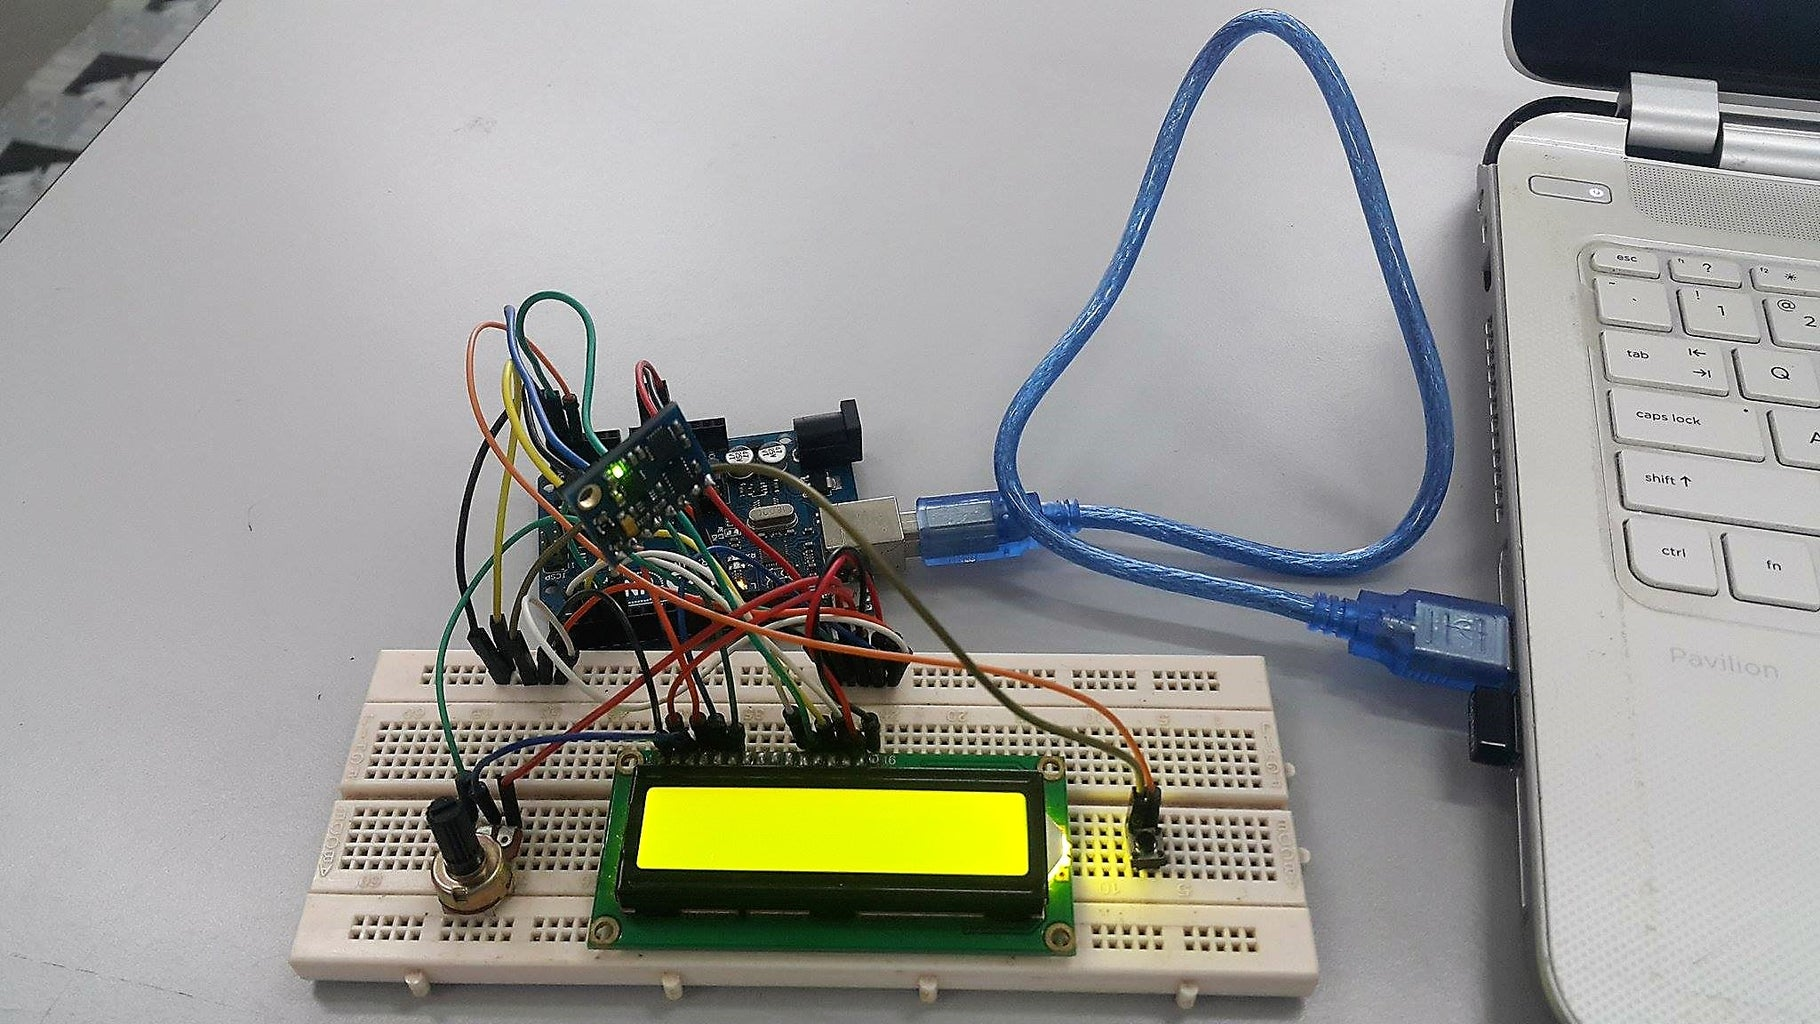 Step 4: Connect Arduino to Computer